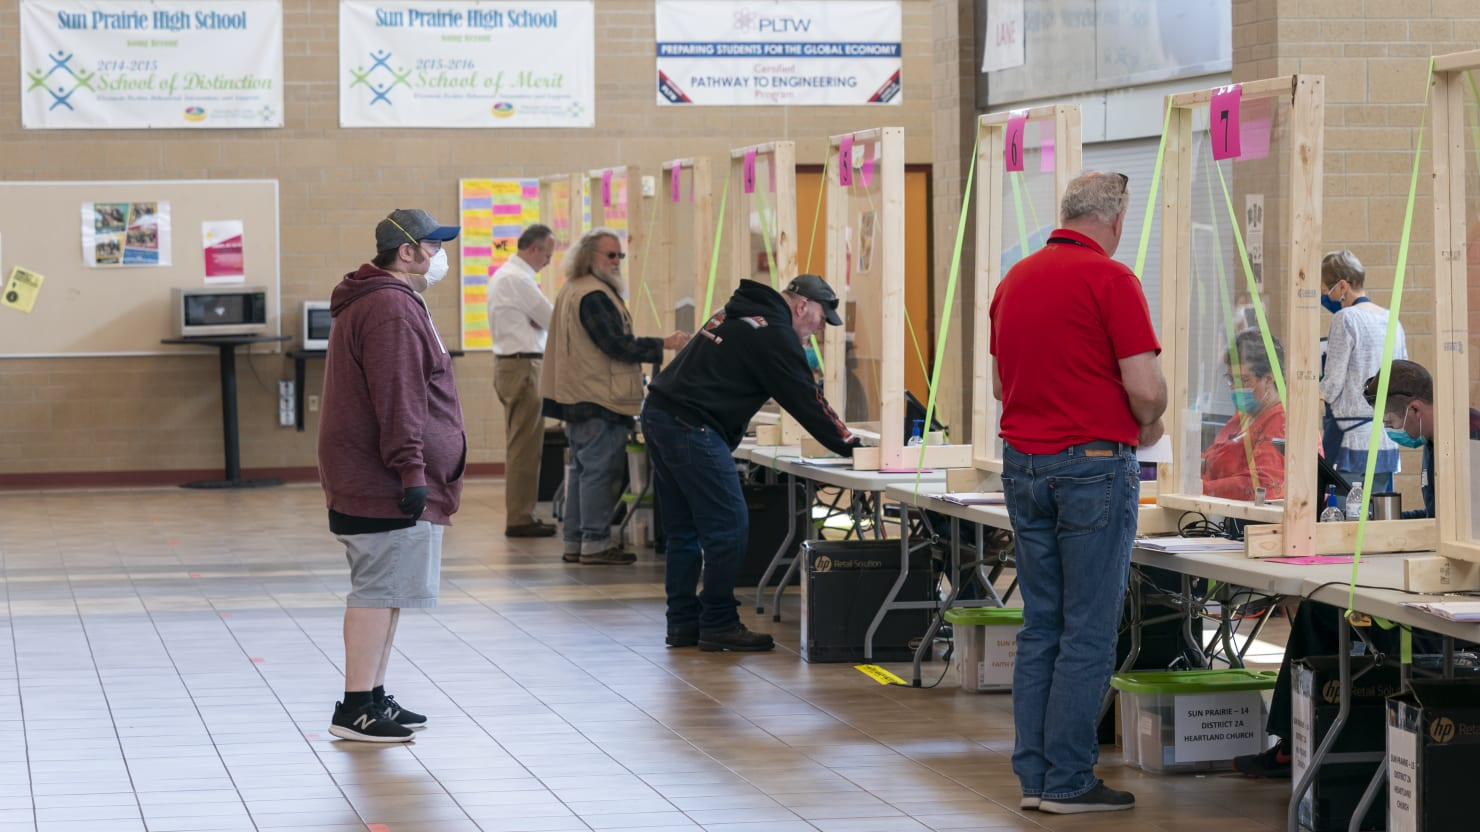 Wisconsin Health Department to Determine if In-Person Primary Voting Resulted in New COVID-19 Cases